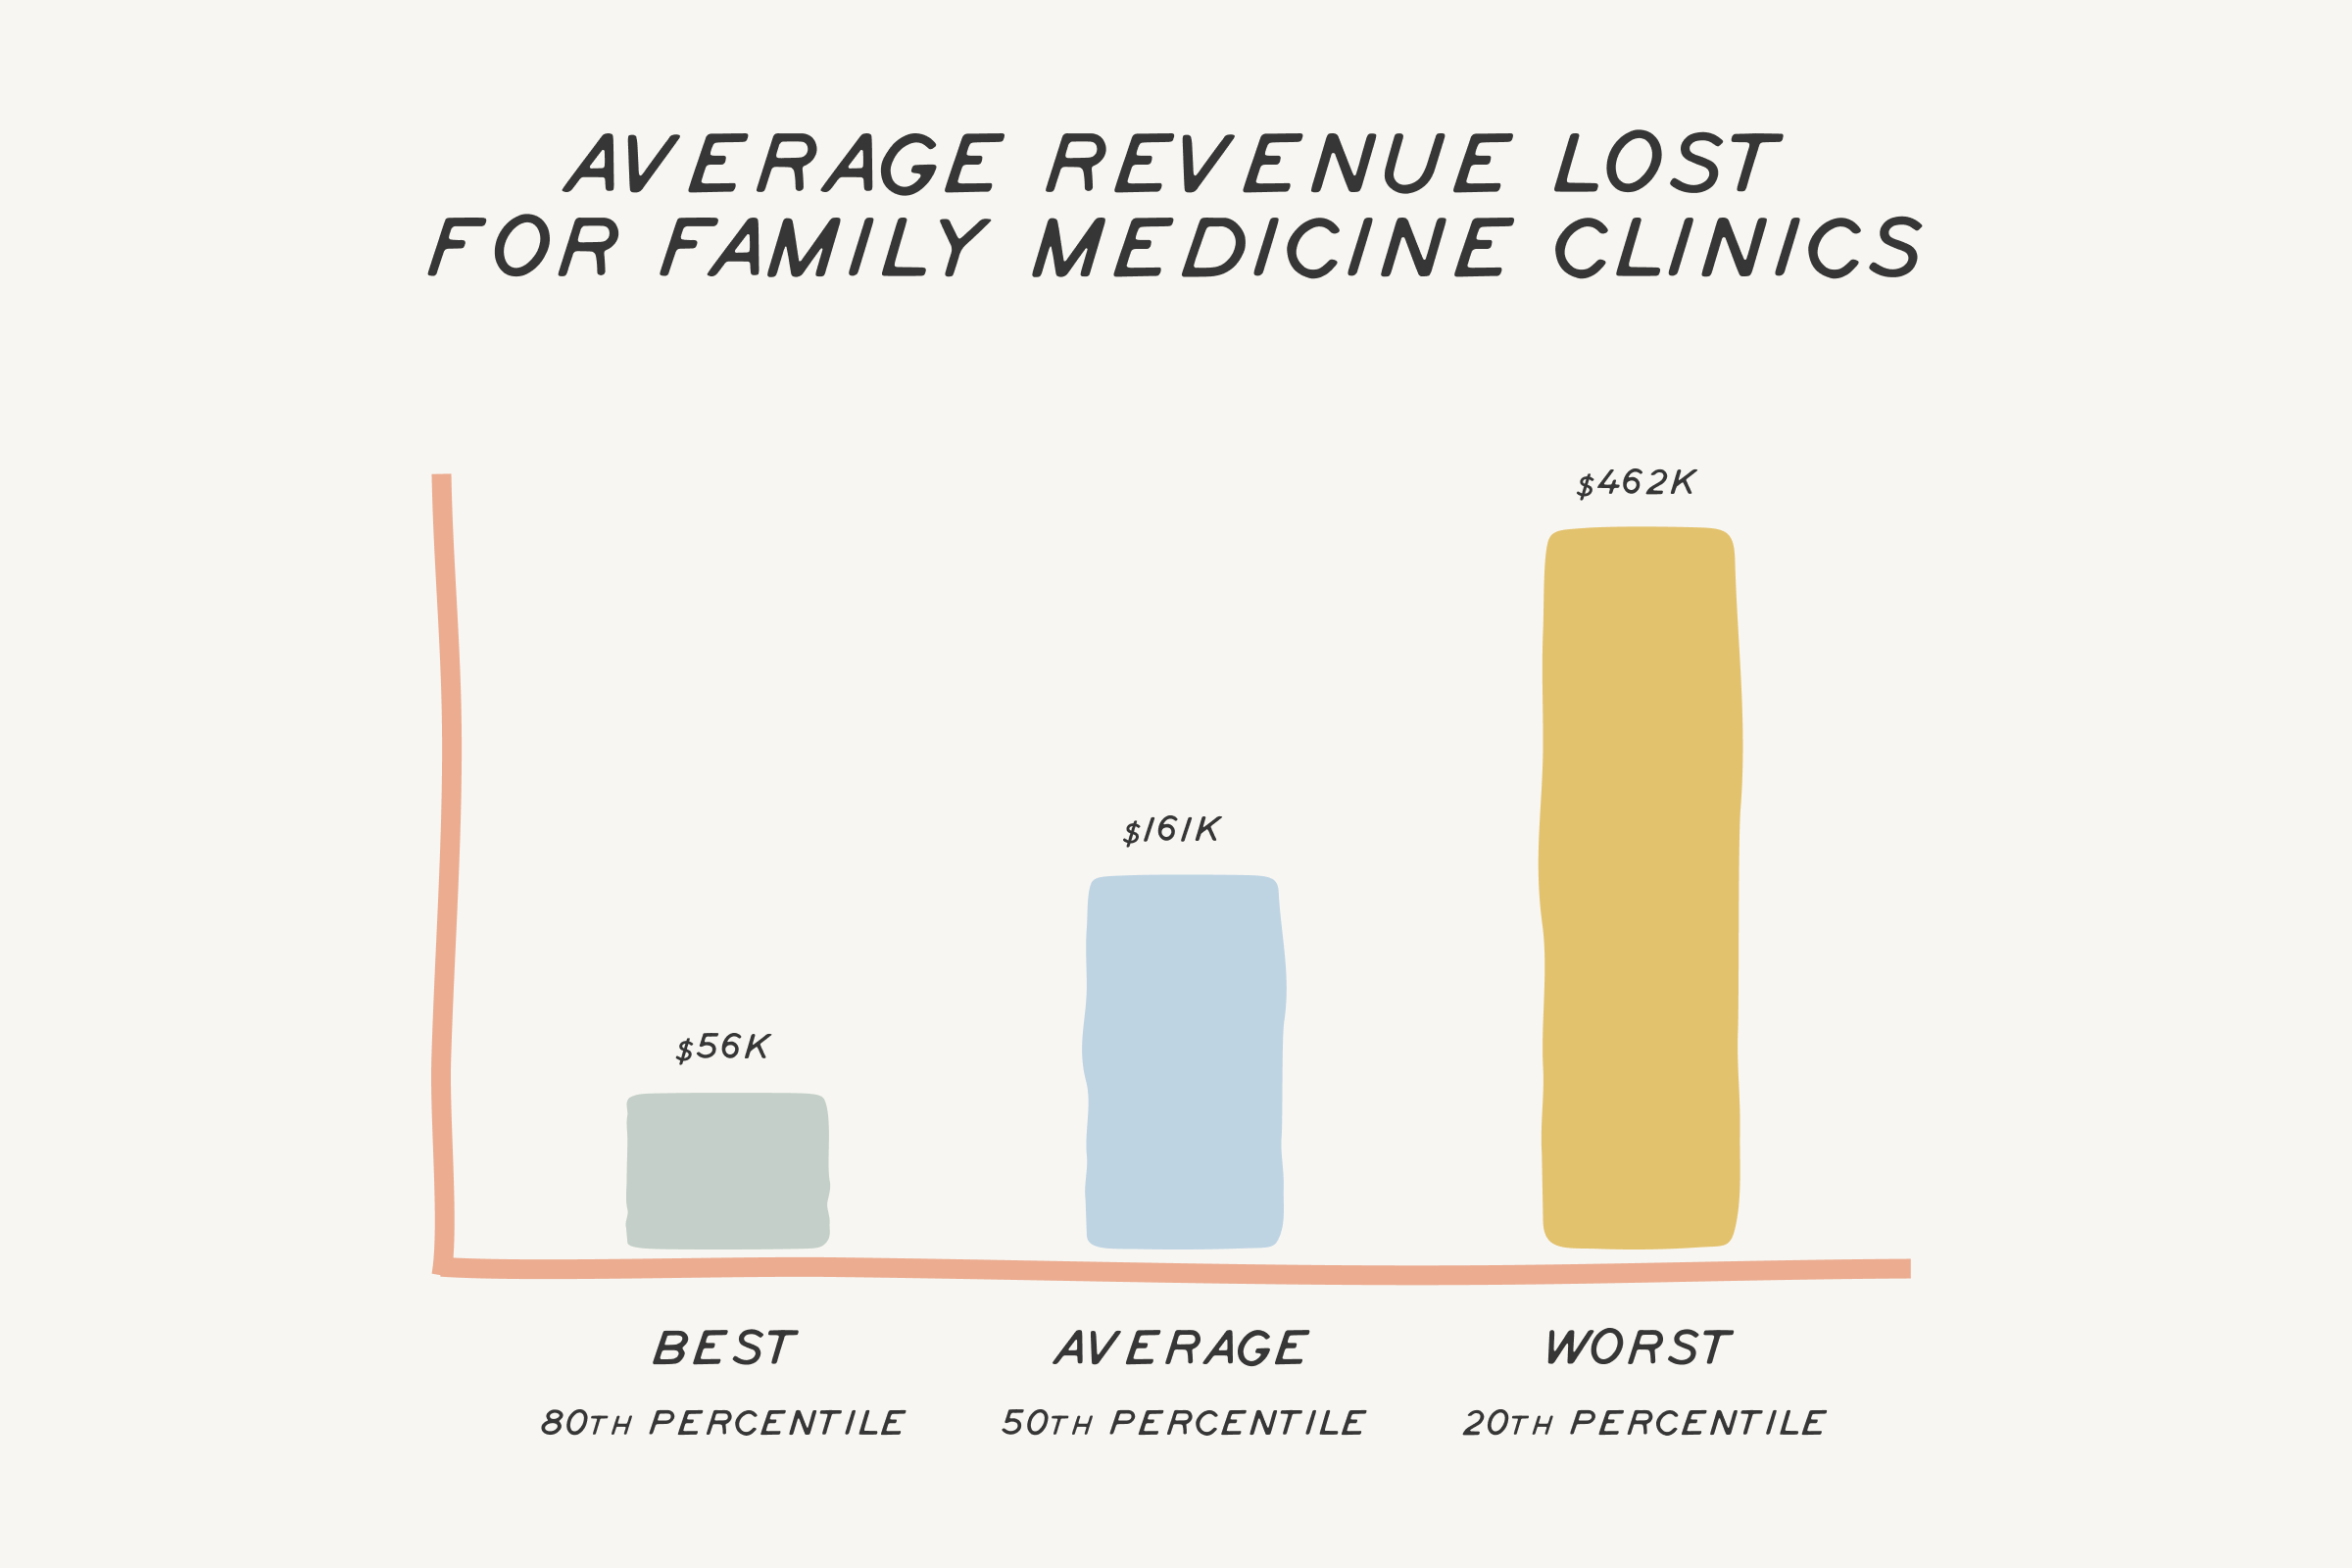 Family Medicine Clinics: Losing Tens Of Thousands In Annual Revenue